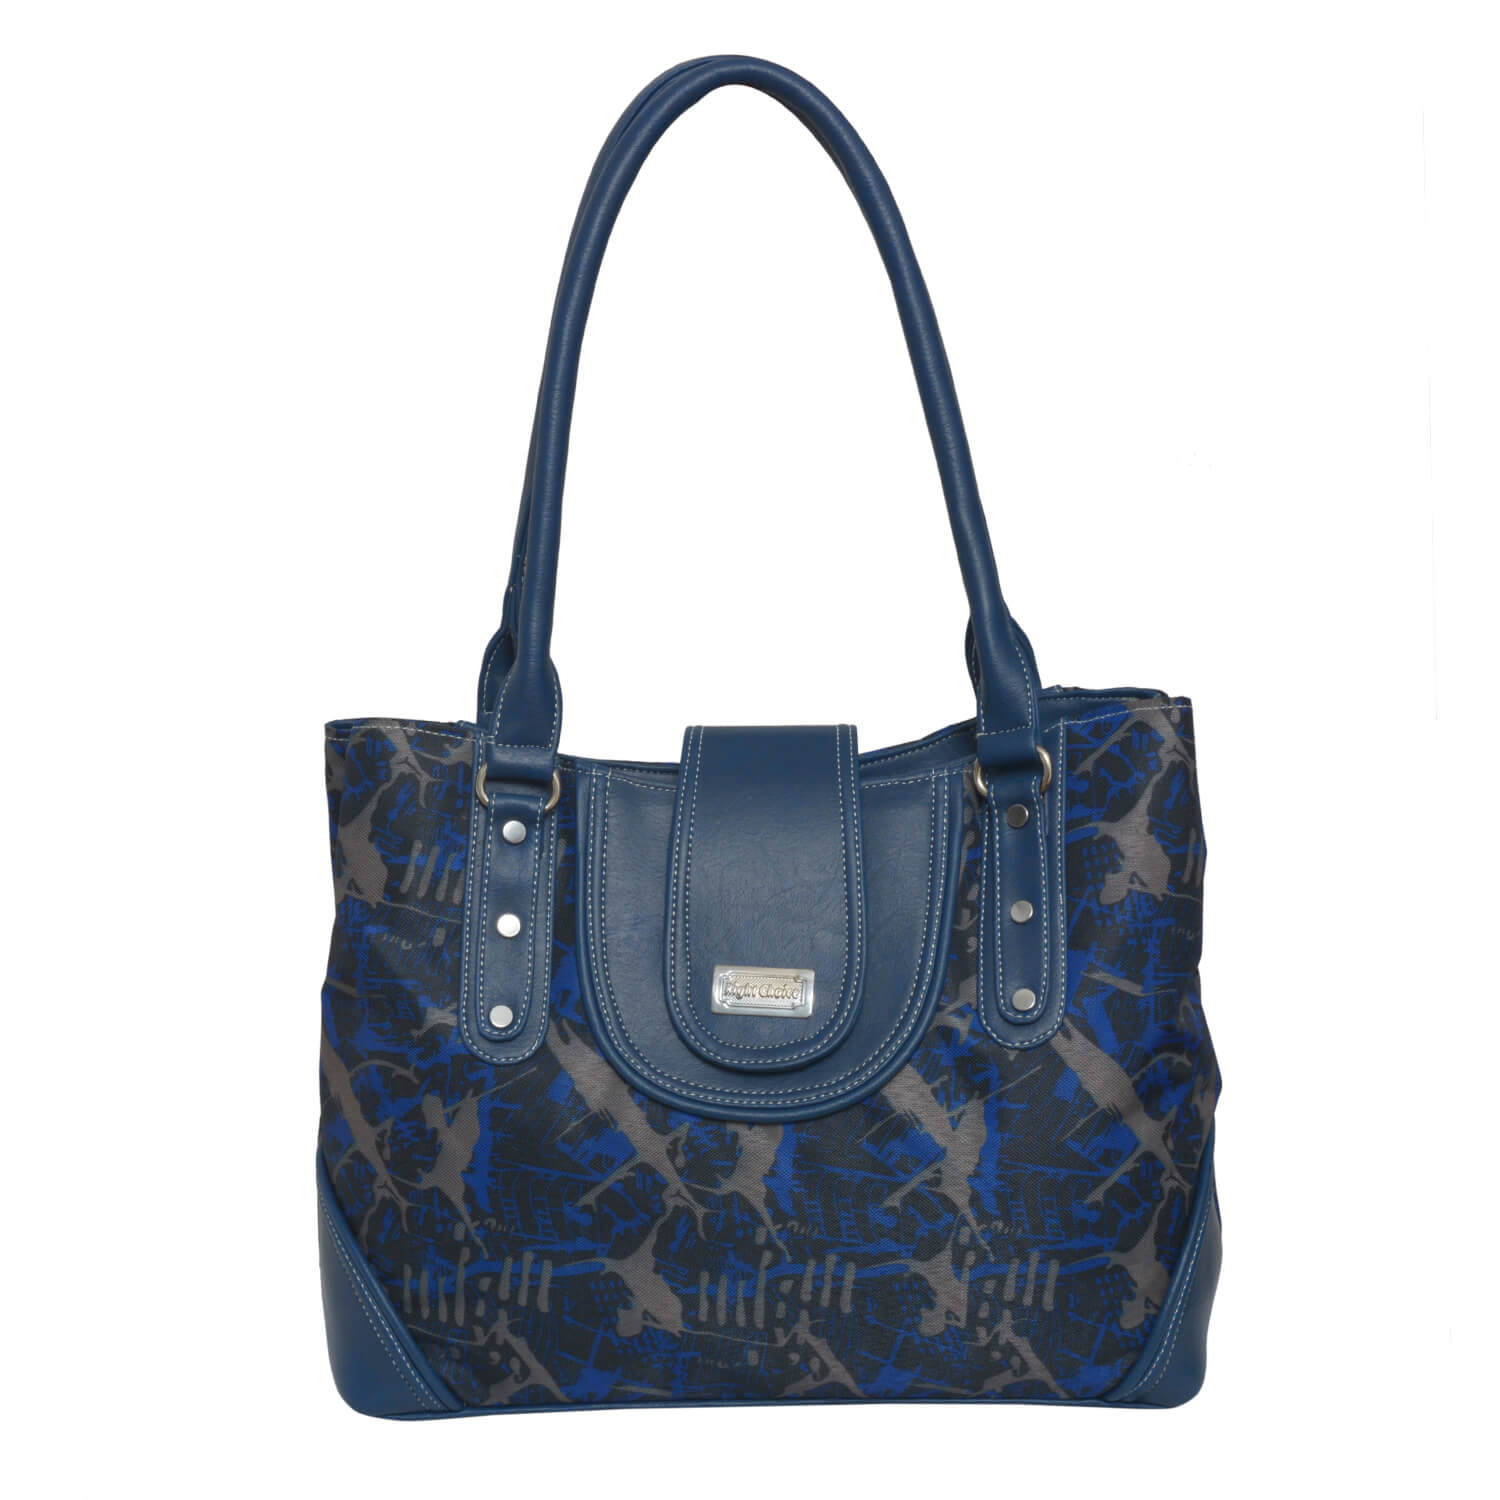 Right Choice RCH314 women's handbags in a modern type